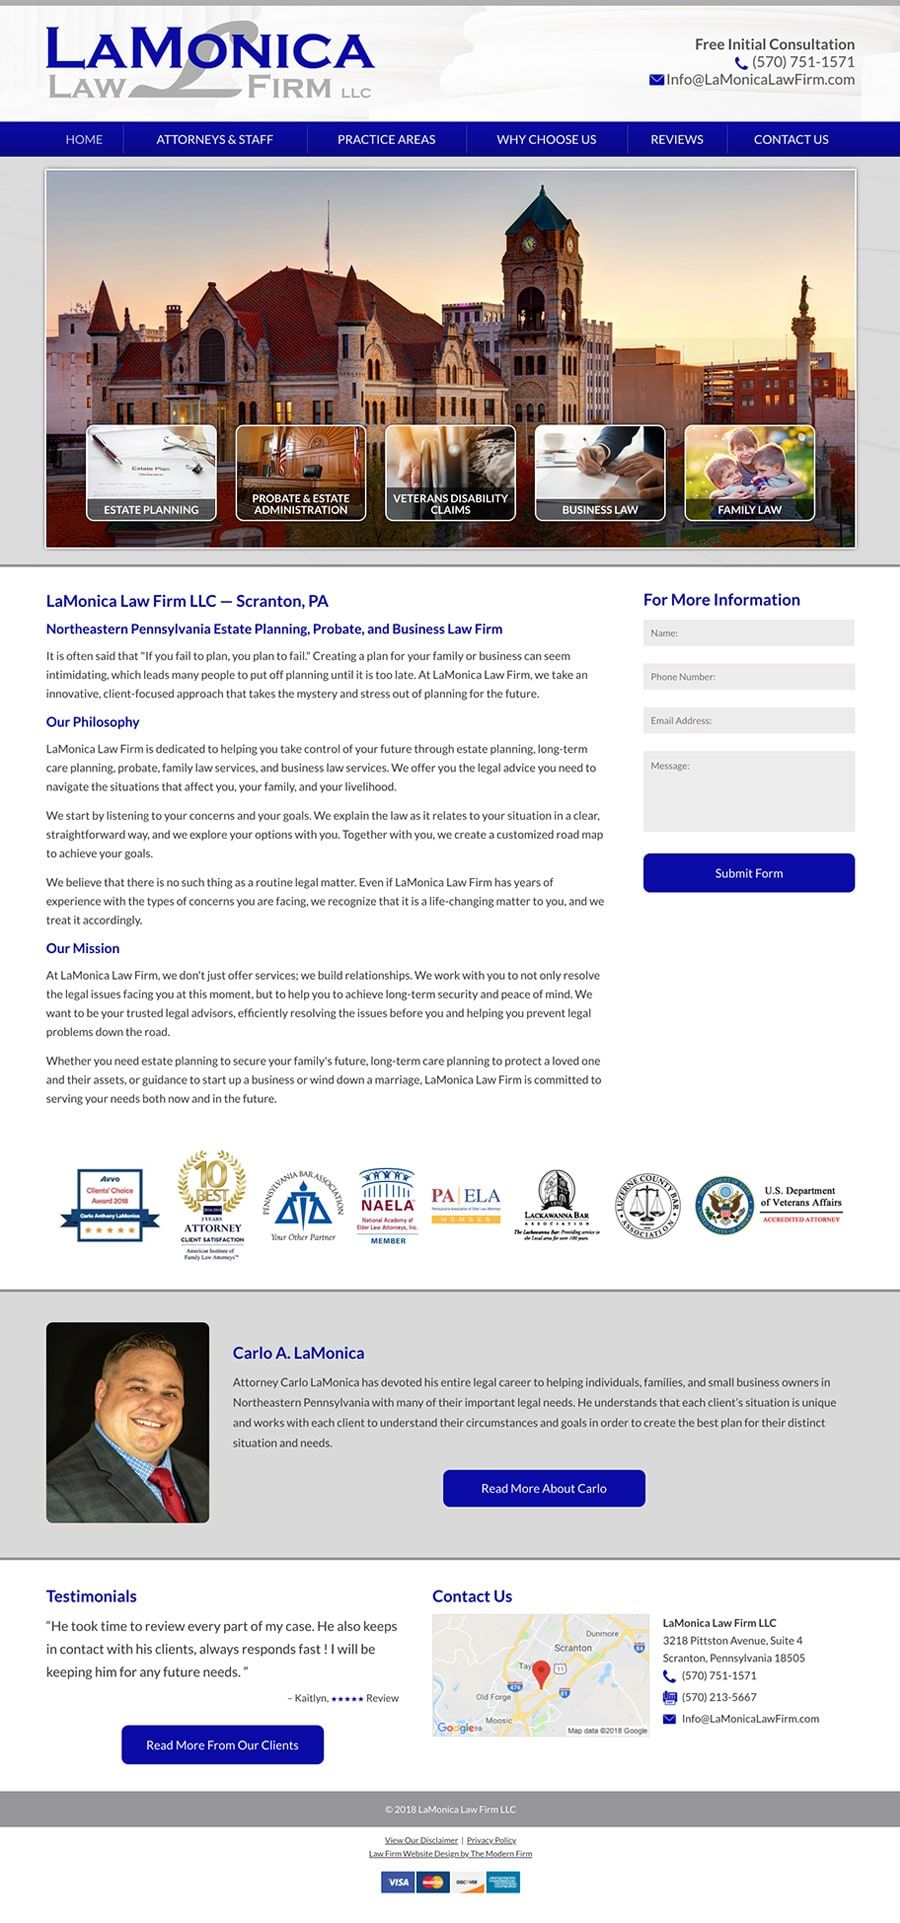 Law Firm Website Design for LaMonica Law Firm LLC